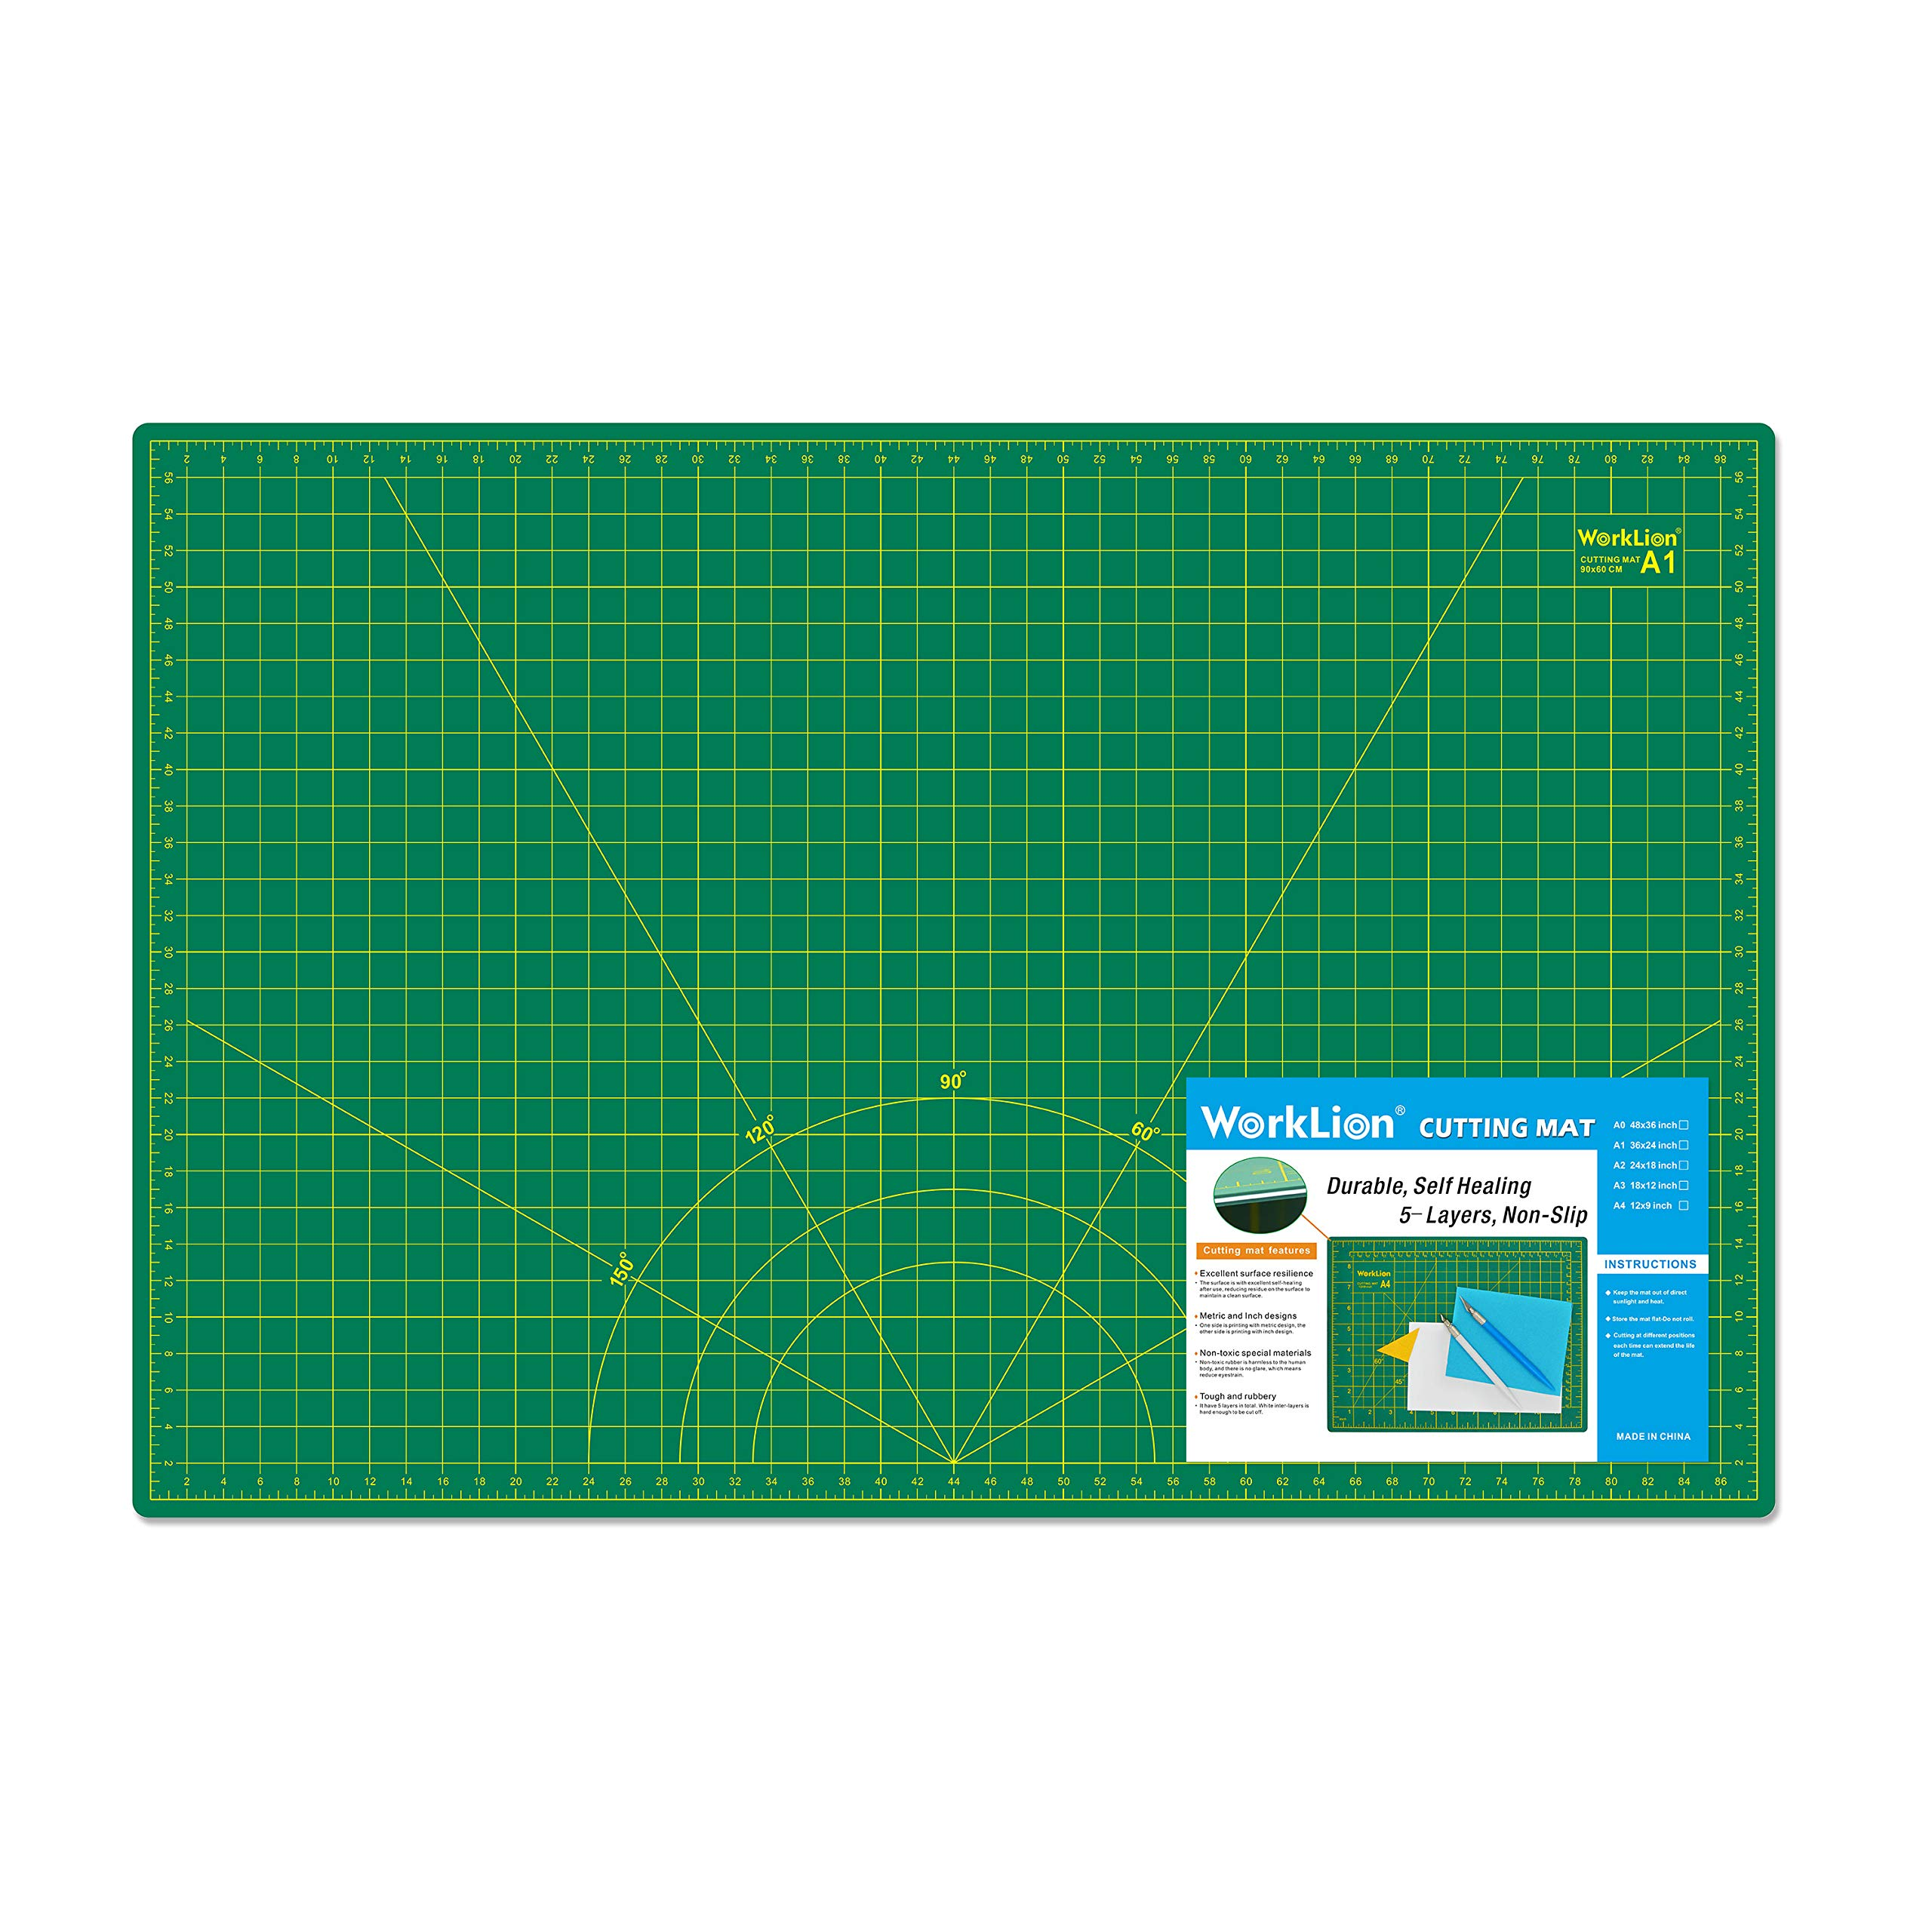 WORKLION 24'' x 36'' Large Self Healing PVC Cutting Mat, Double Sided, Gridded Rotary Cutting Board for Craft, Fabric, Quilting, Sewing, Scrapbooking - Art Project